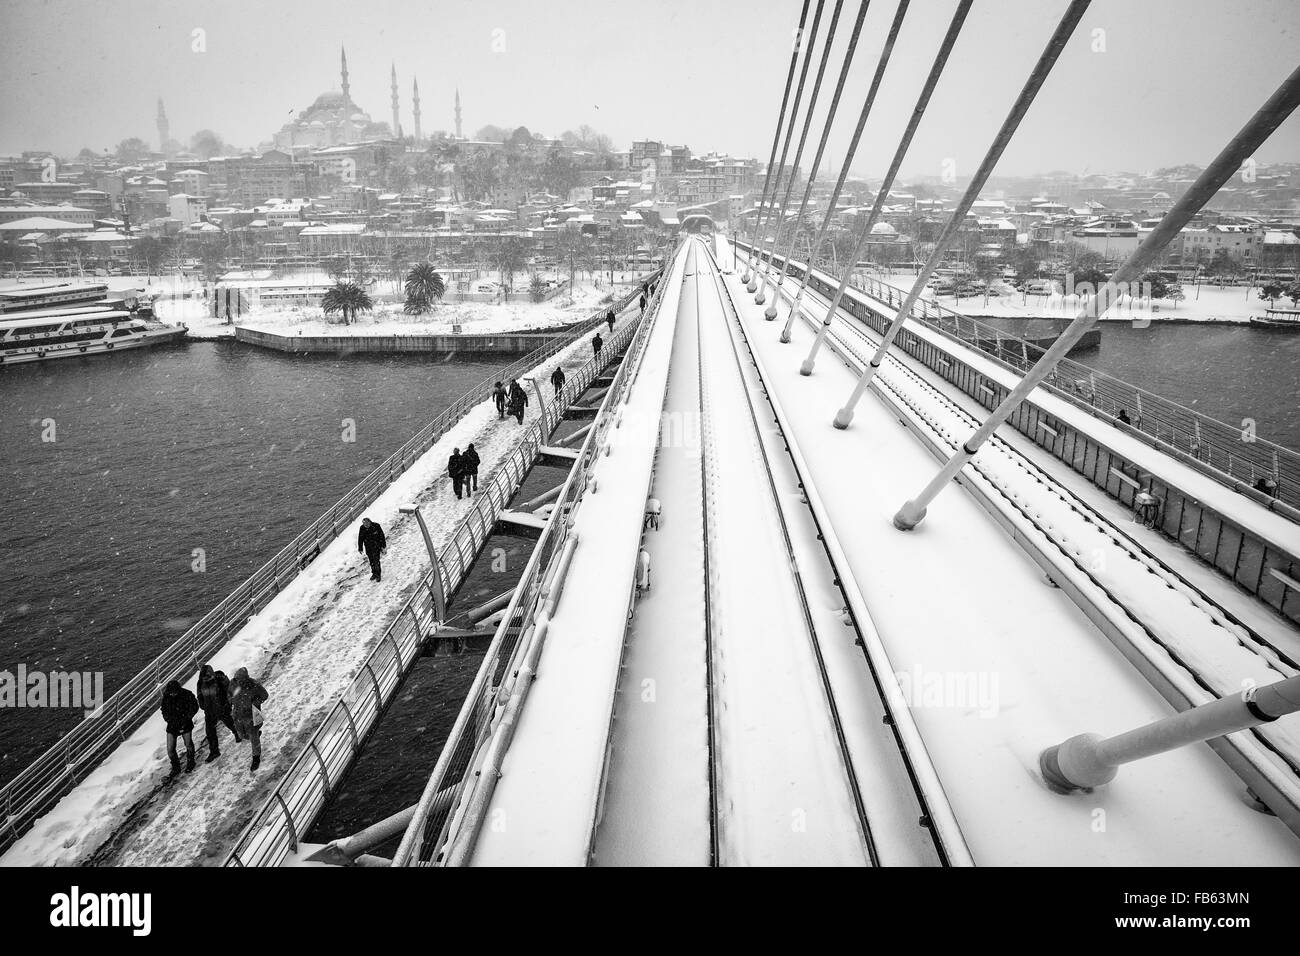 People walking on the Golden Horn Metro Bridge on a snowy day, 2016. - Stock Image